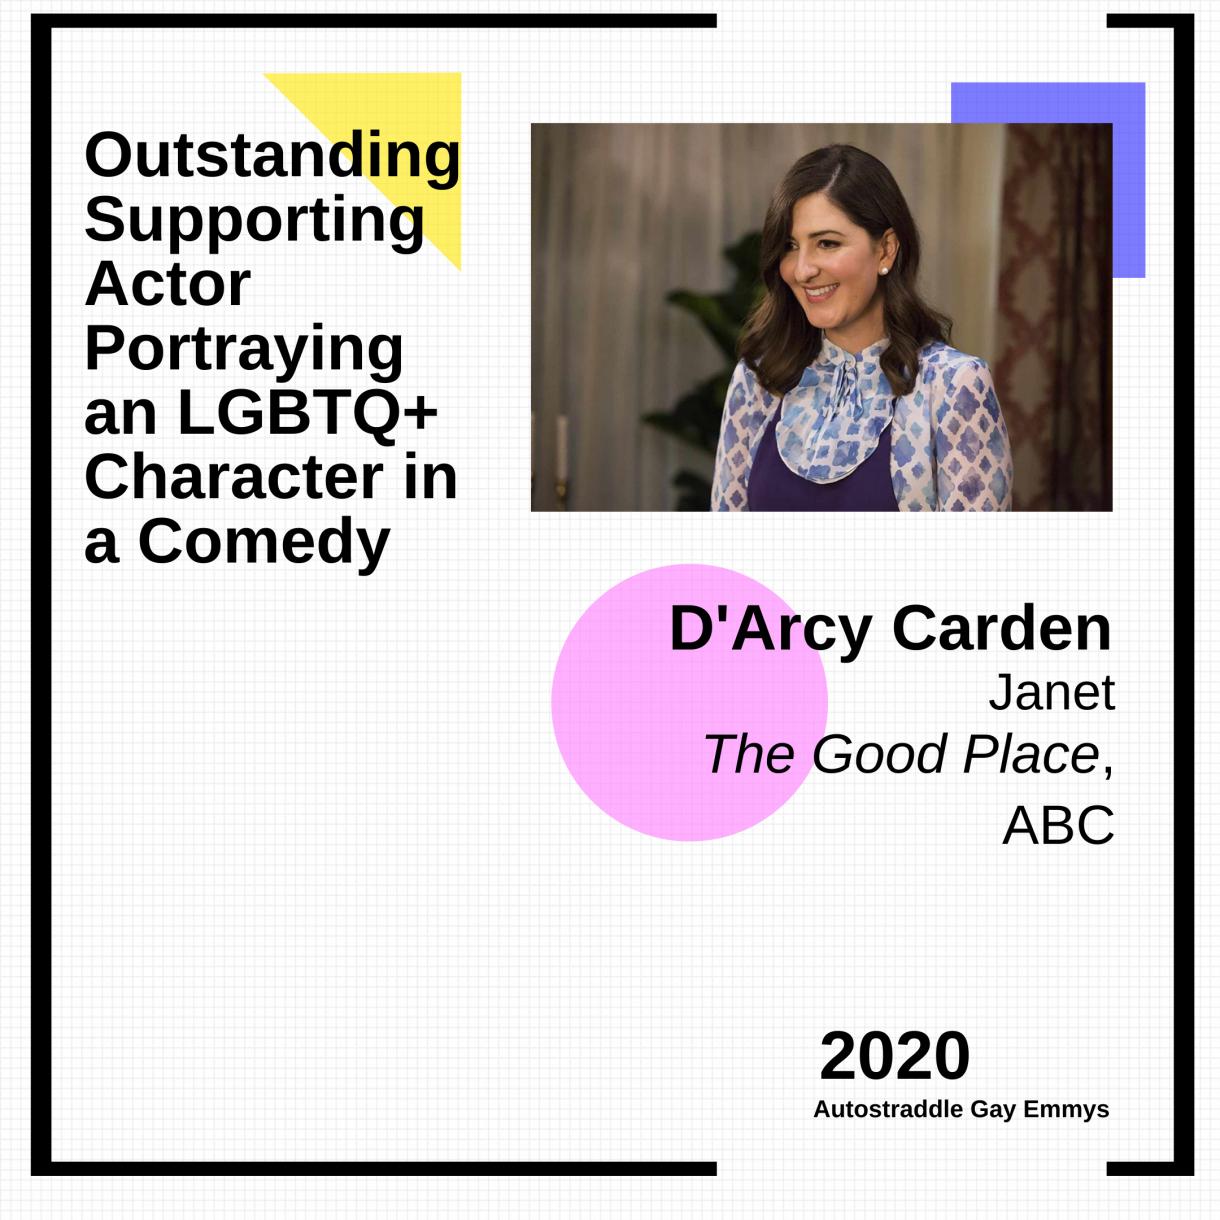 Colorful Graphic Announcing Outstanding Supporting Actor Portraying an LGBTQ+ Character in a Comedy: D'Arcy Carden, Janet, The Good Place with a picture of Janet